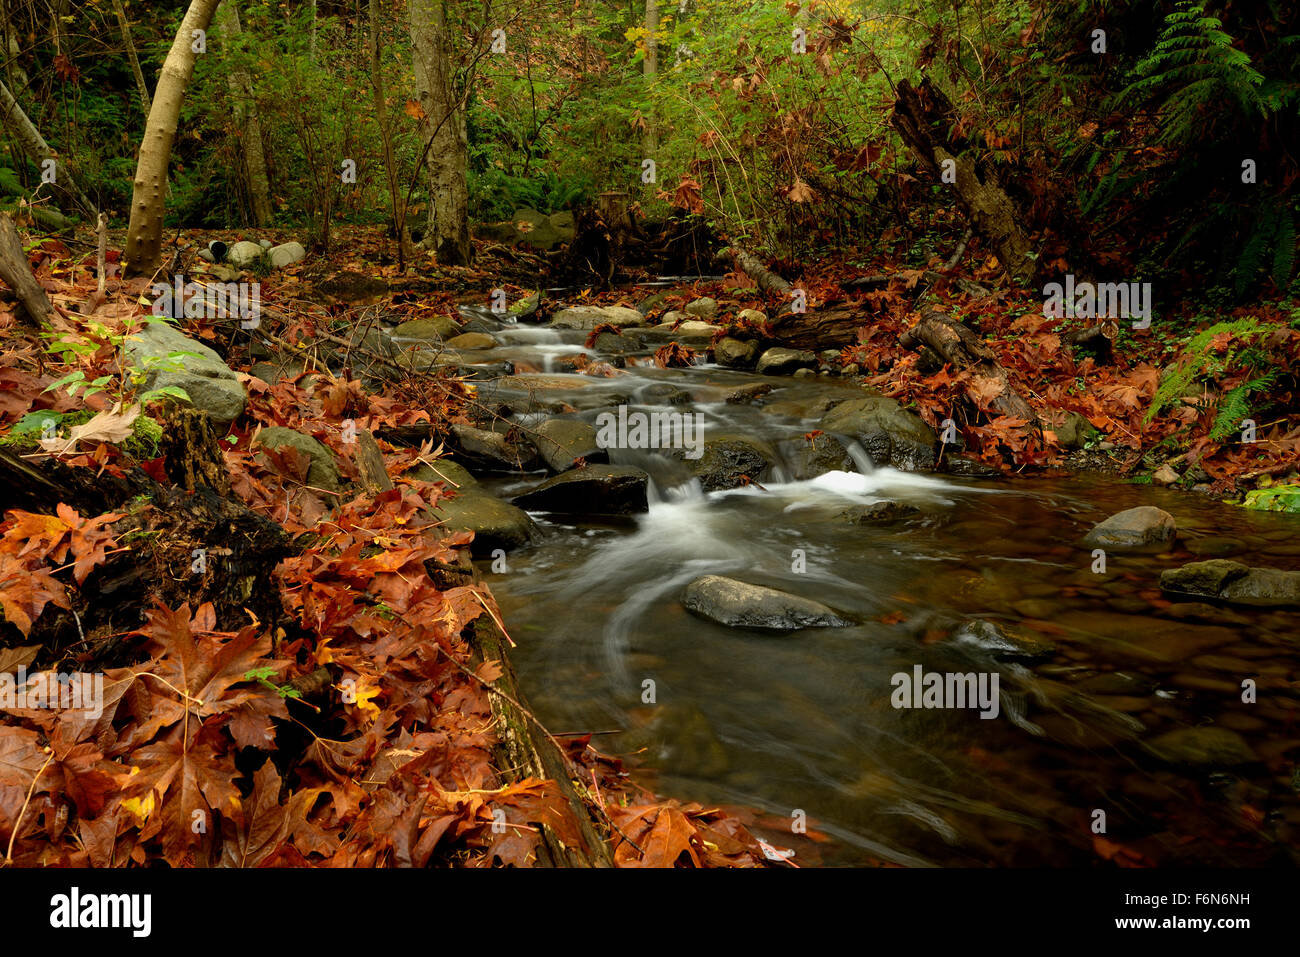 Salmon Bearing stream in the Fall, Autumn. - Stock Image